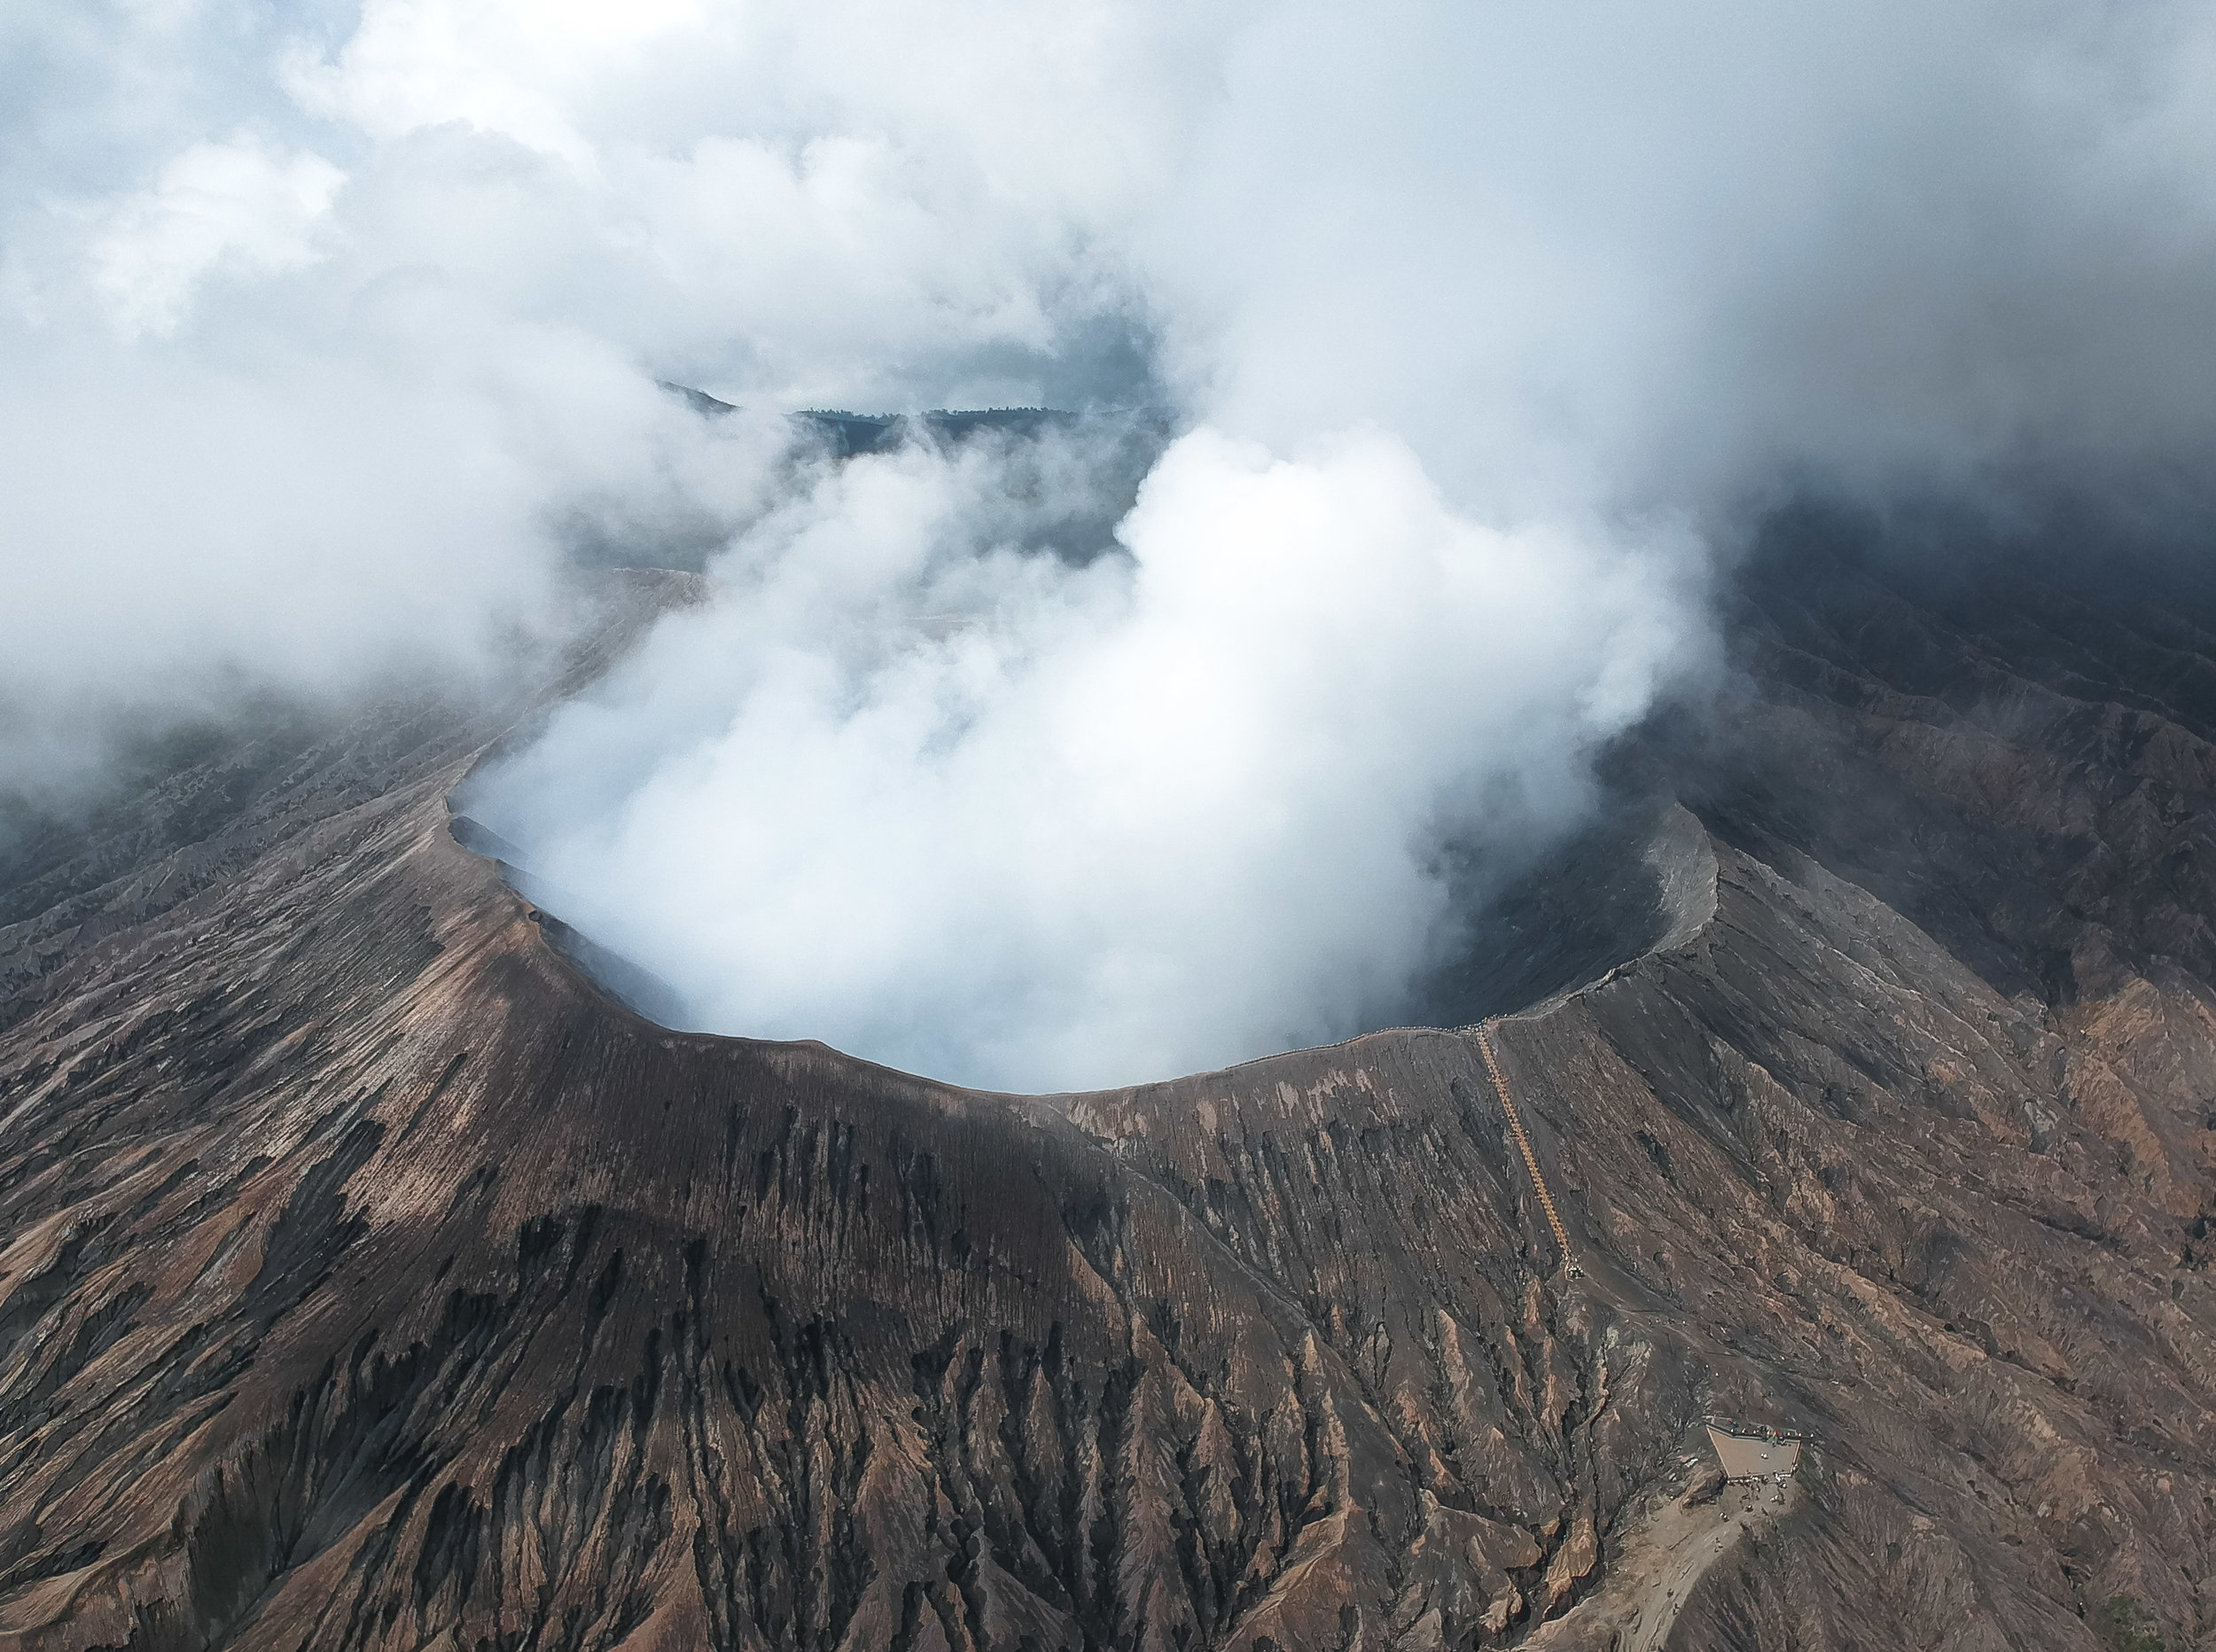 curio.trips.indonesia.java.smoking.volcano.crater.drone.jpg